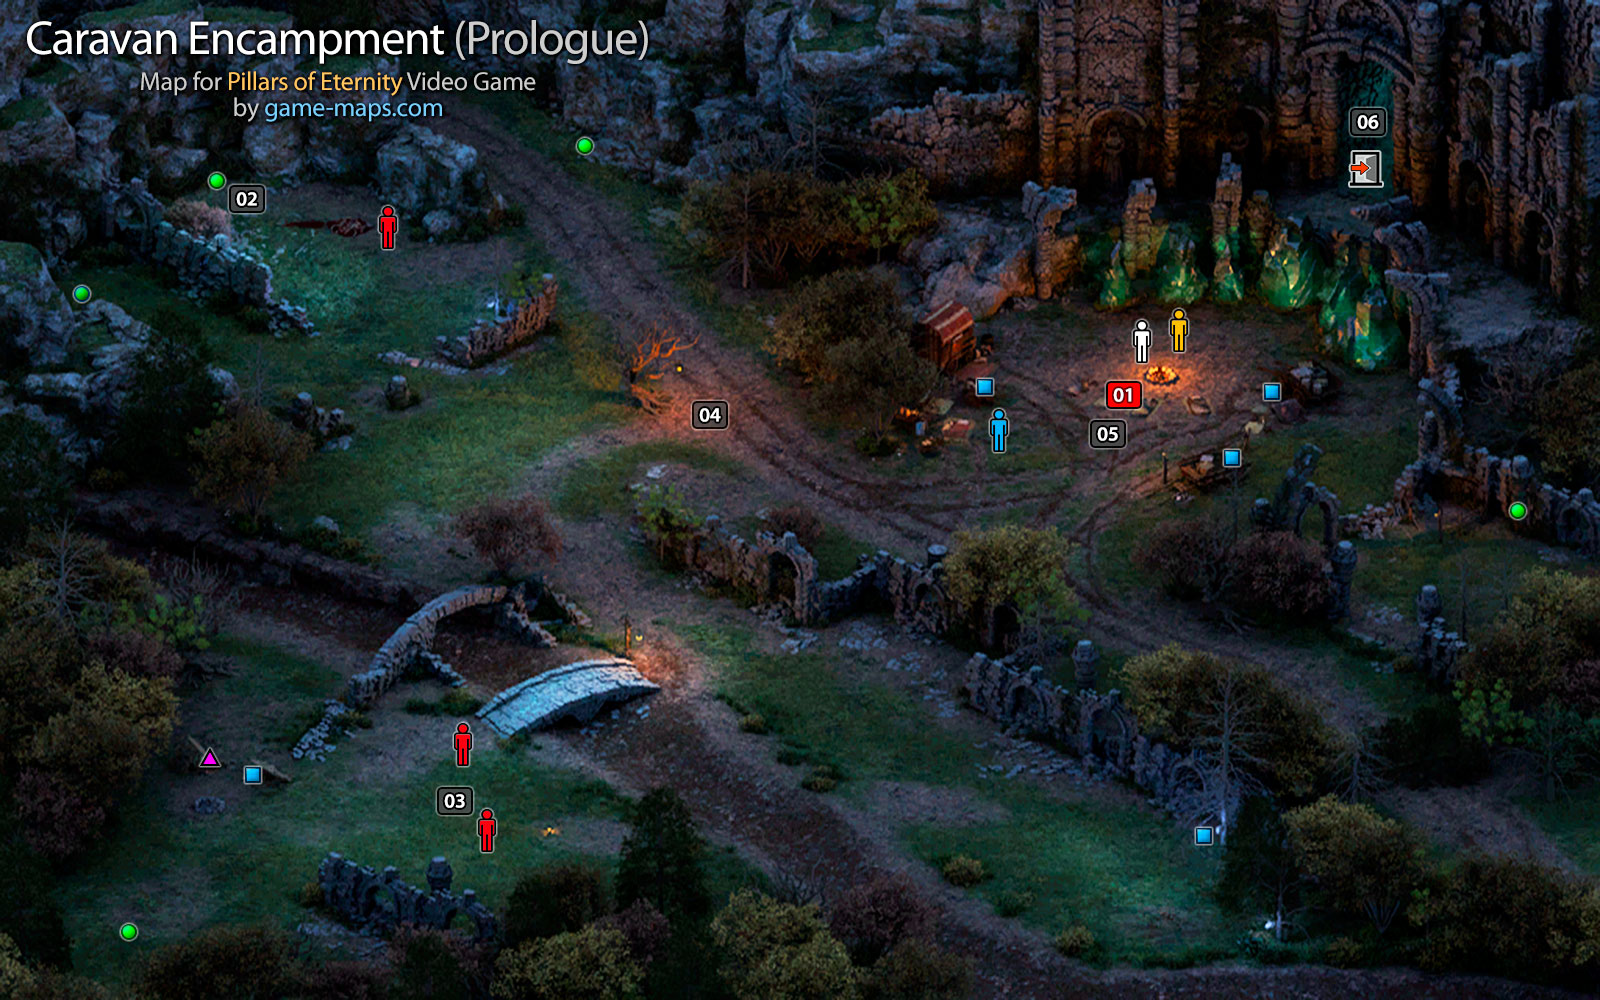 Pillars Of Eternity World Map Complete.Encampment Prologue Pillars Of Eternity Game Maps Com